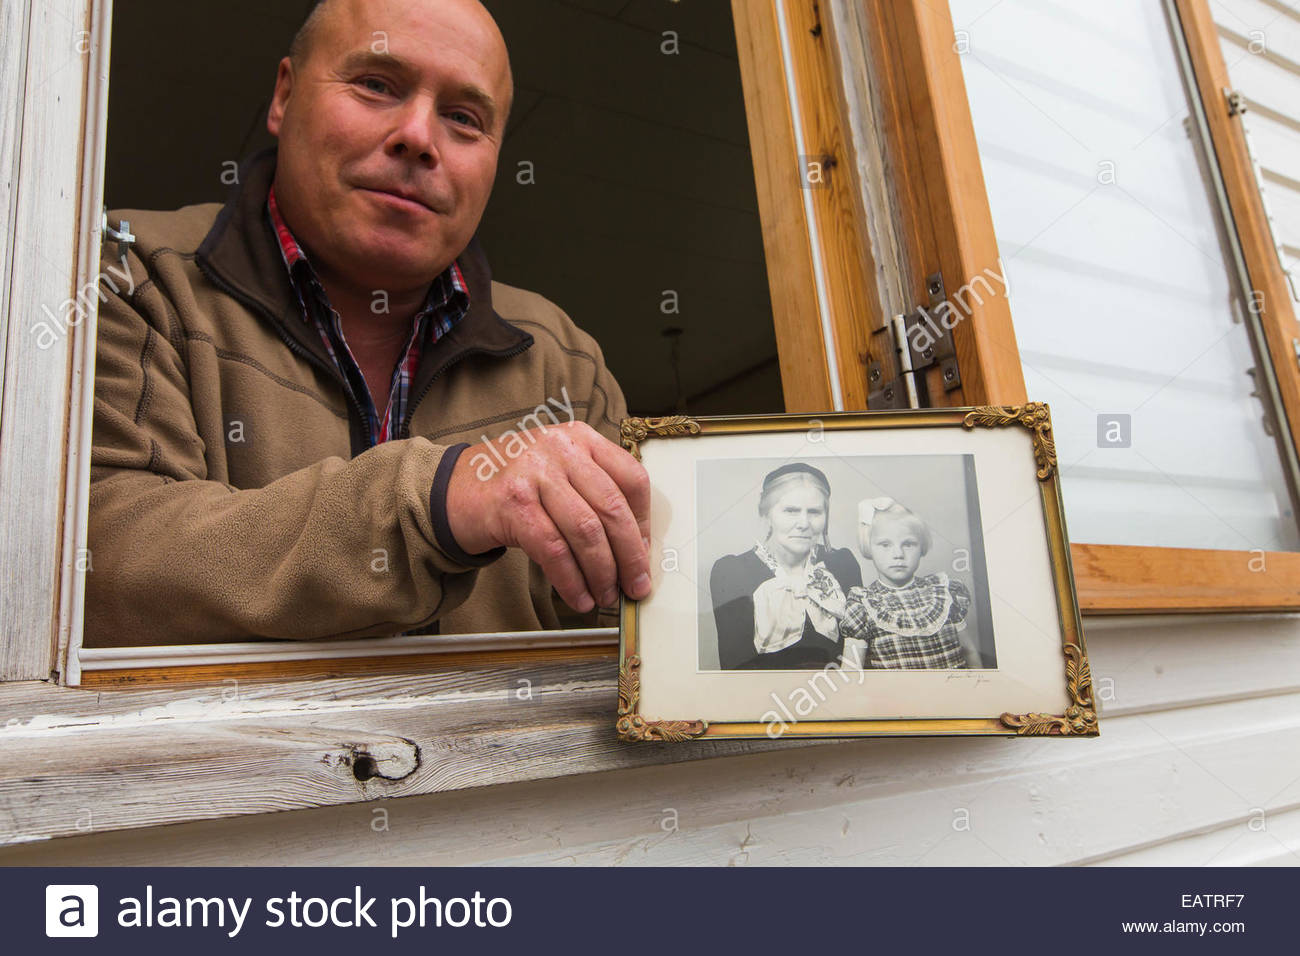 A man in a window holds an old black and white photograph. - Stock Image